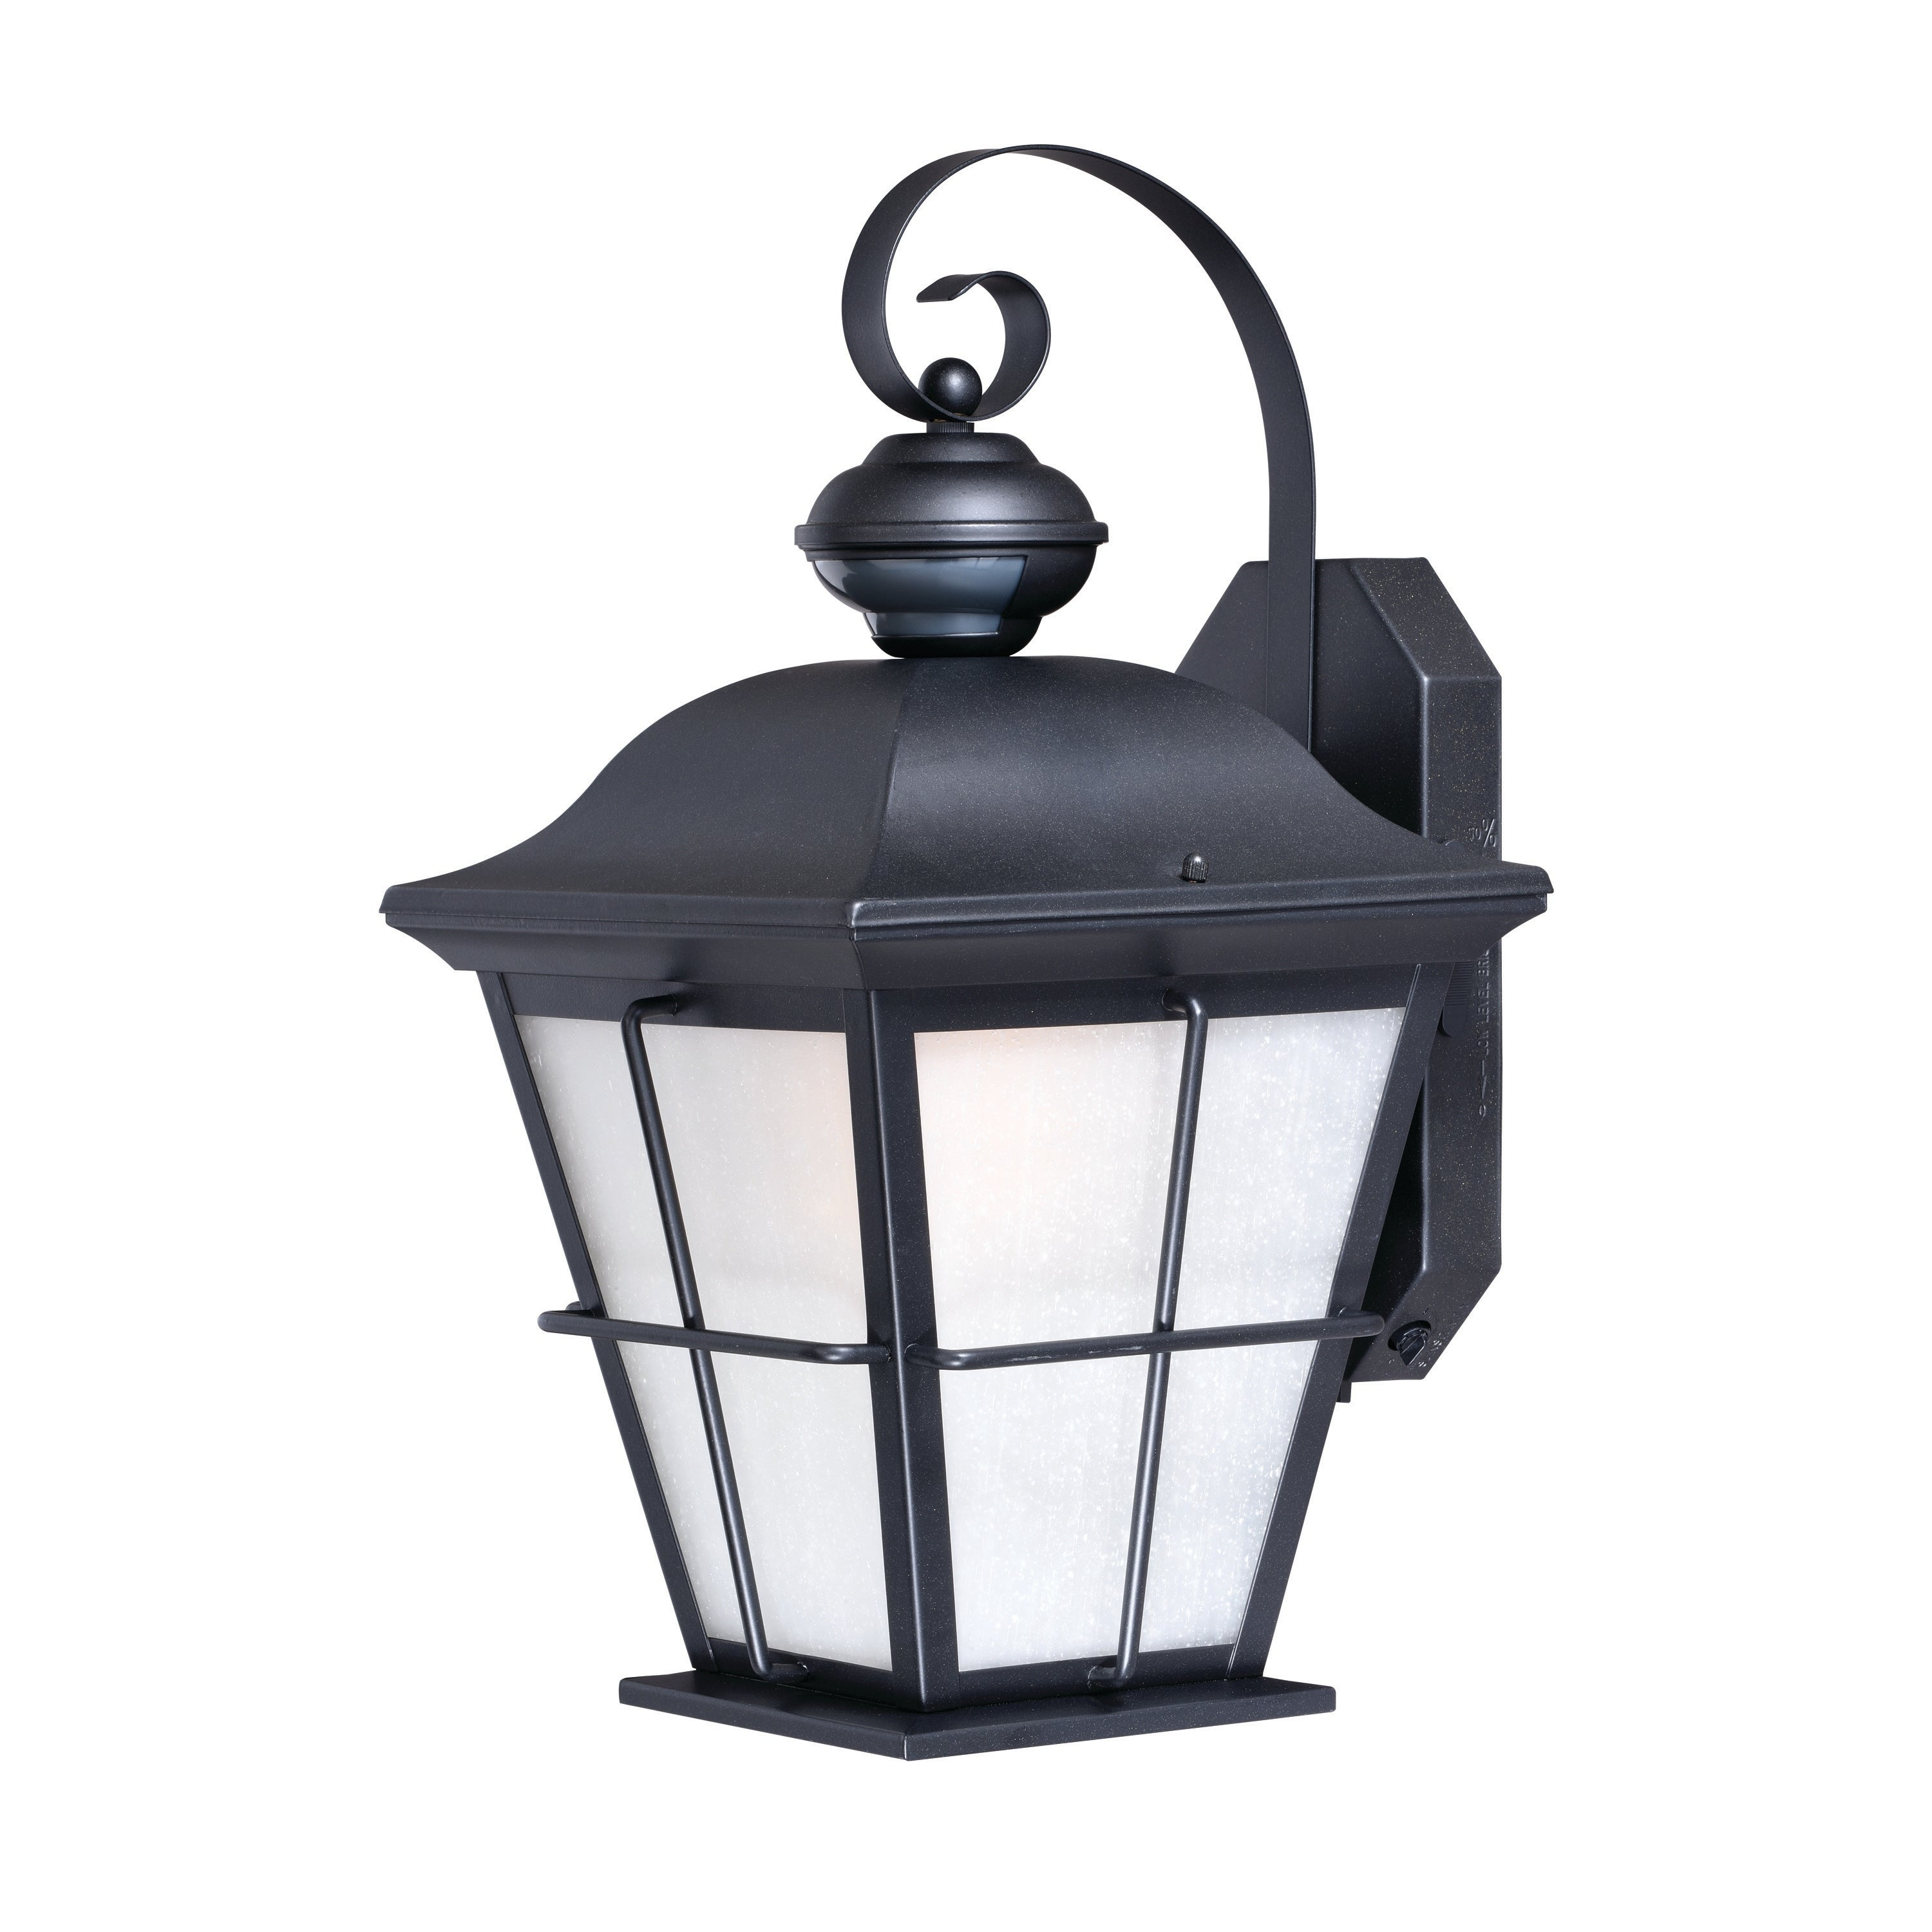 Image of: Shop New Haven Bronze Motion Sensor Dusk To Dawn Outdoor Wall Light 9 In W X 18 75 In H X 10 25 In D Overstock 20877071